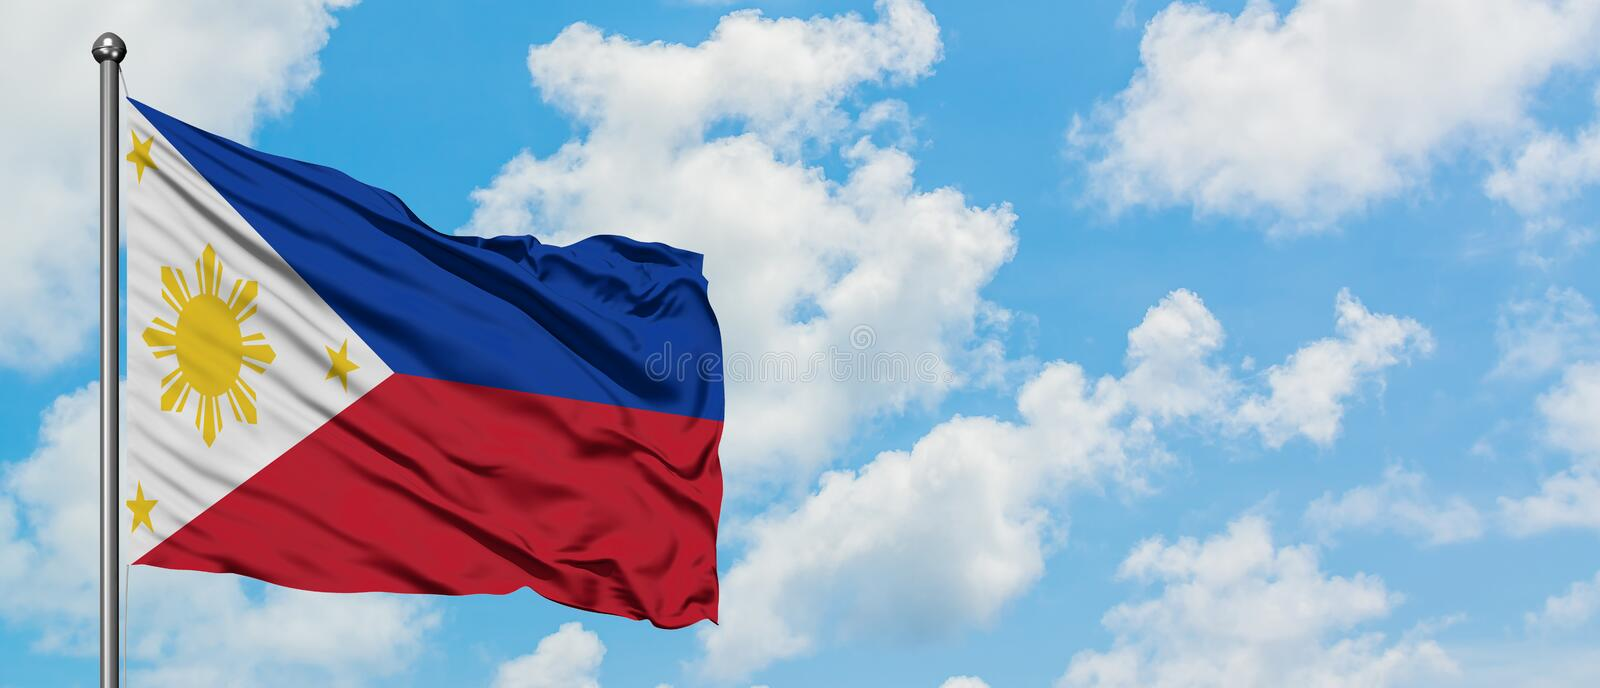 Philippines flag waving in the wind against white cloudy blue sky. Diplomacy concept, international relations.  royalty free stock image